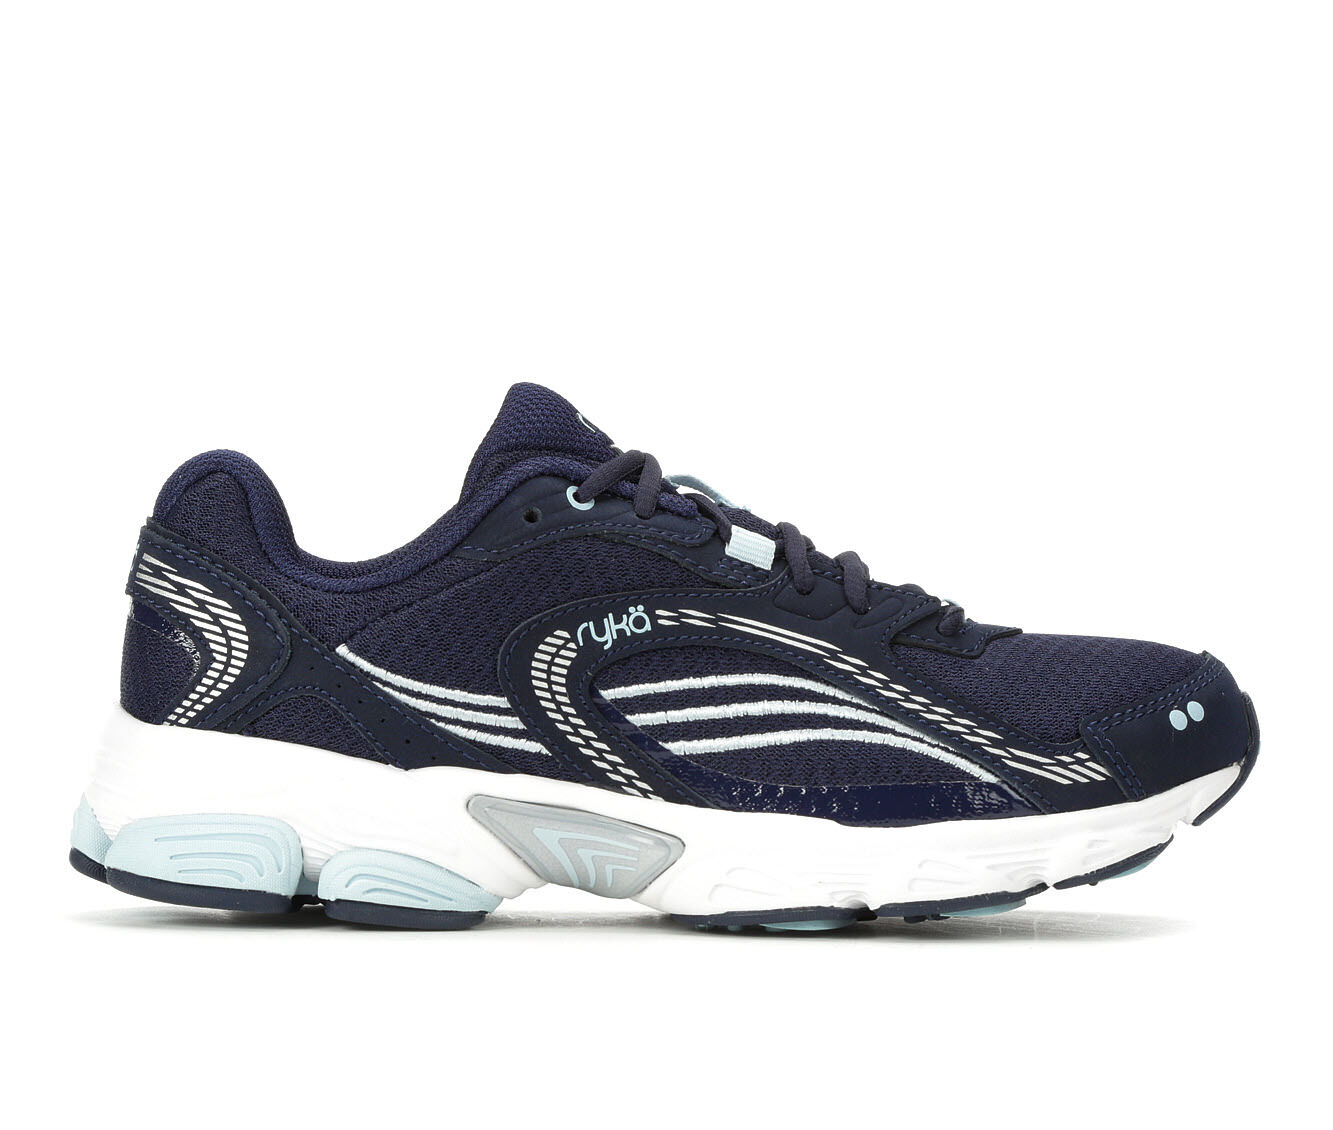 Women's Ryka Ultimate Running Shoes Navy/Blue/Silvr